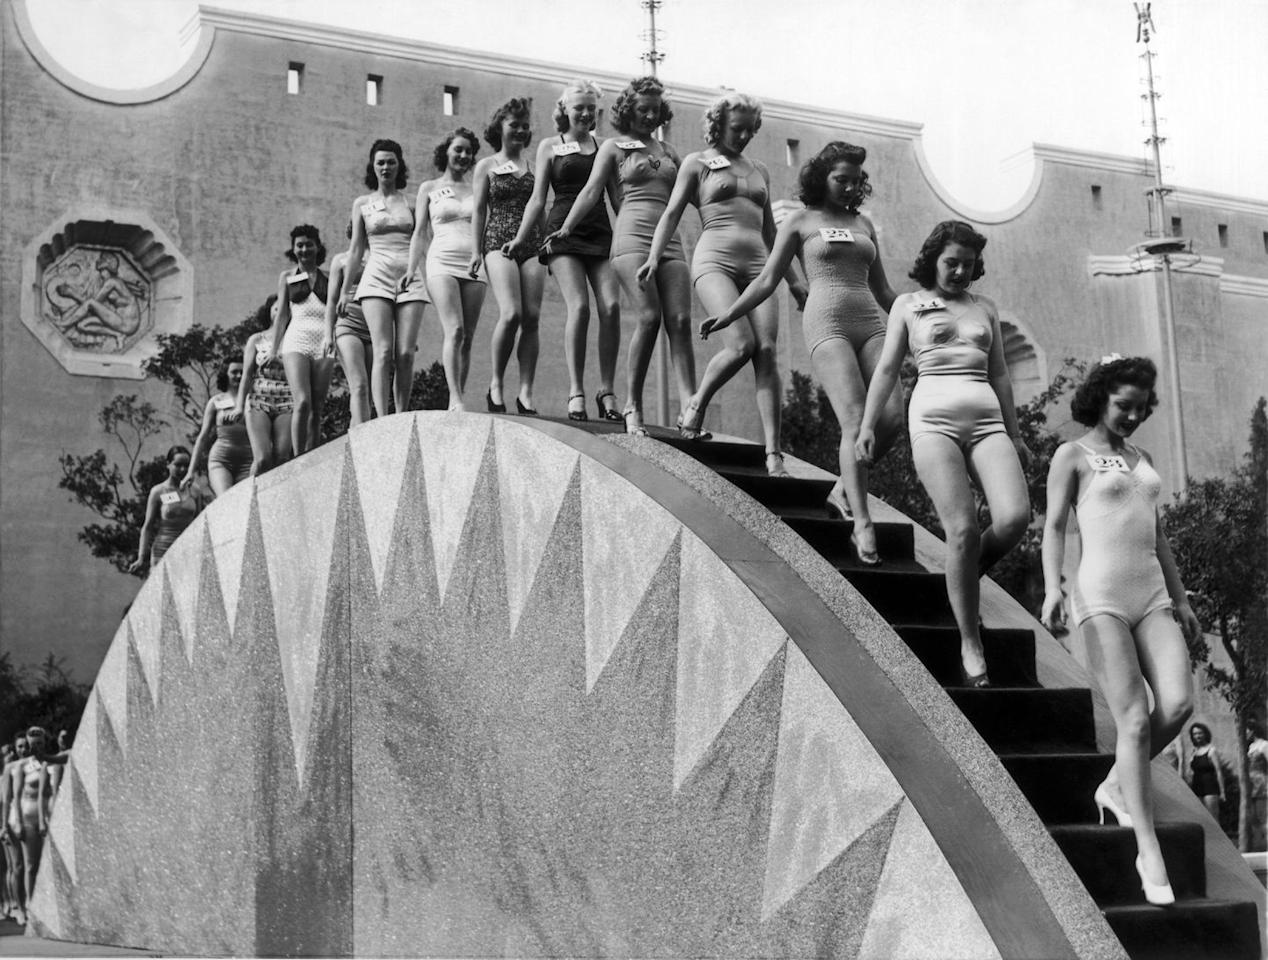 <p>Contestants line up for a beauty pageant at the Treasure Island Casino in Las Vegas. </p>